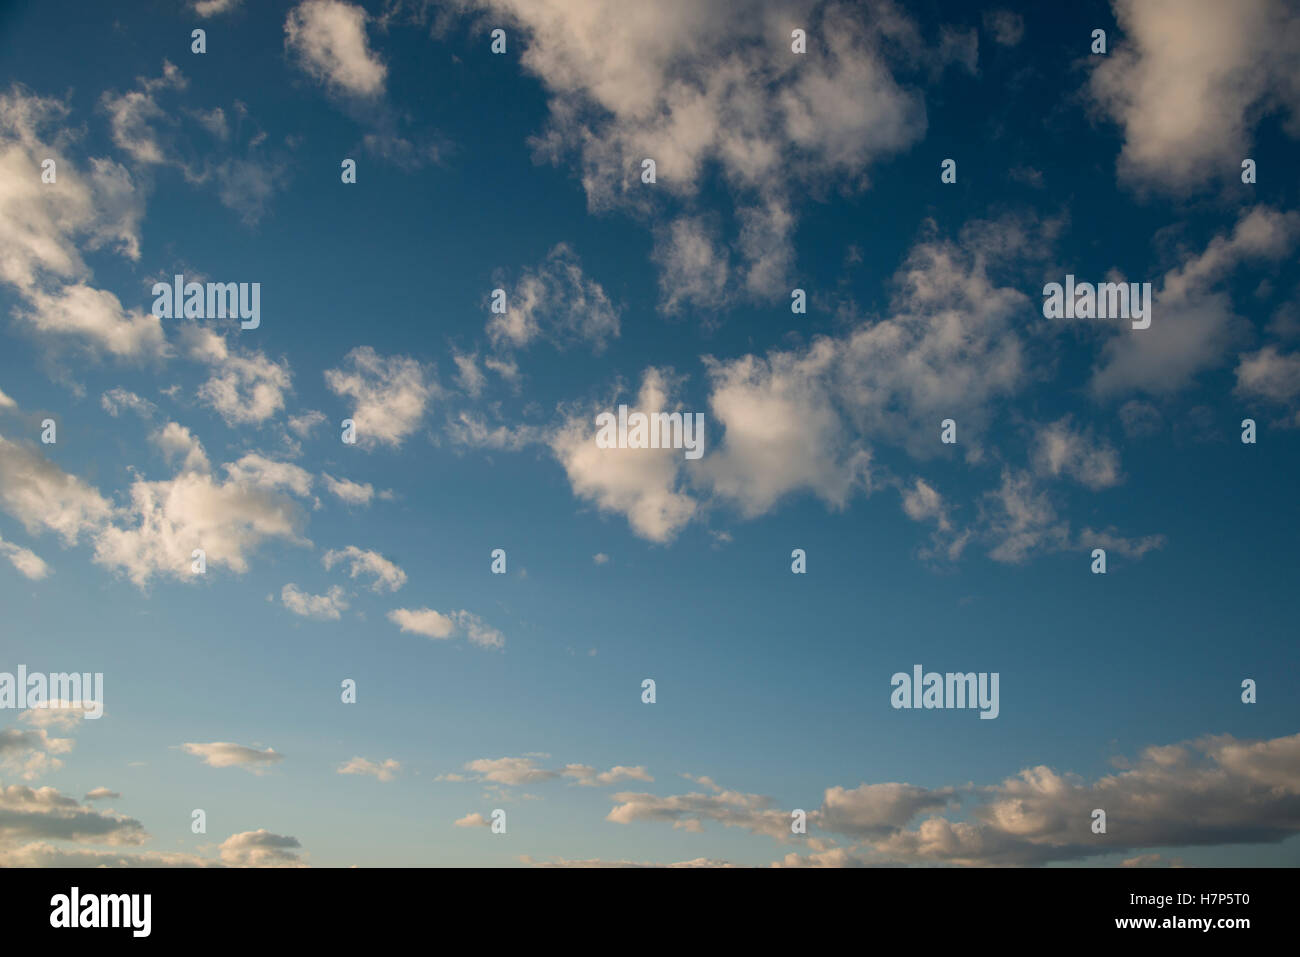 Golden hour sun tinted fluffy white clouds against a blue sky, background image - Stock Image